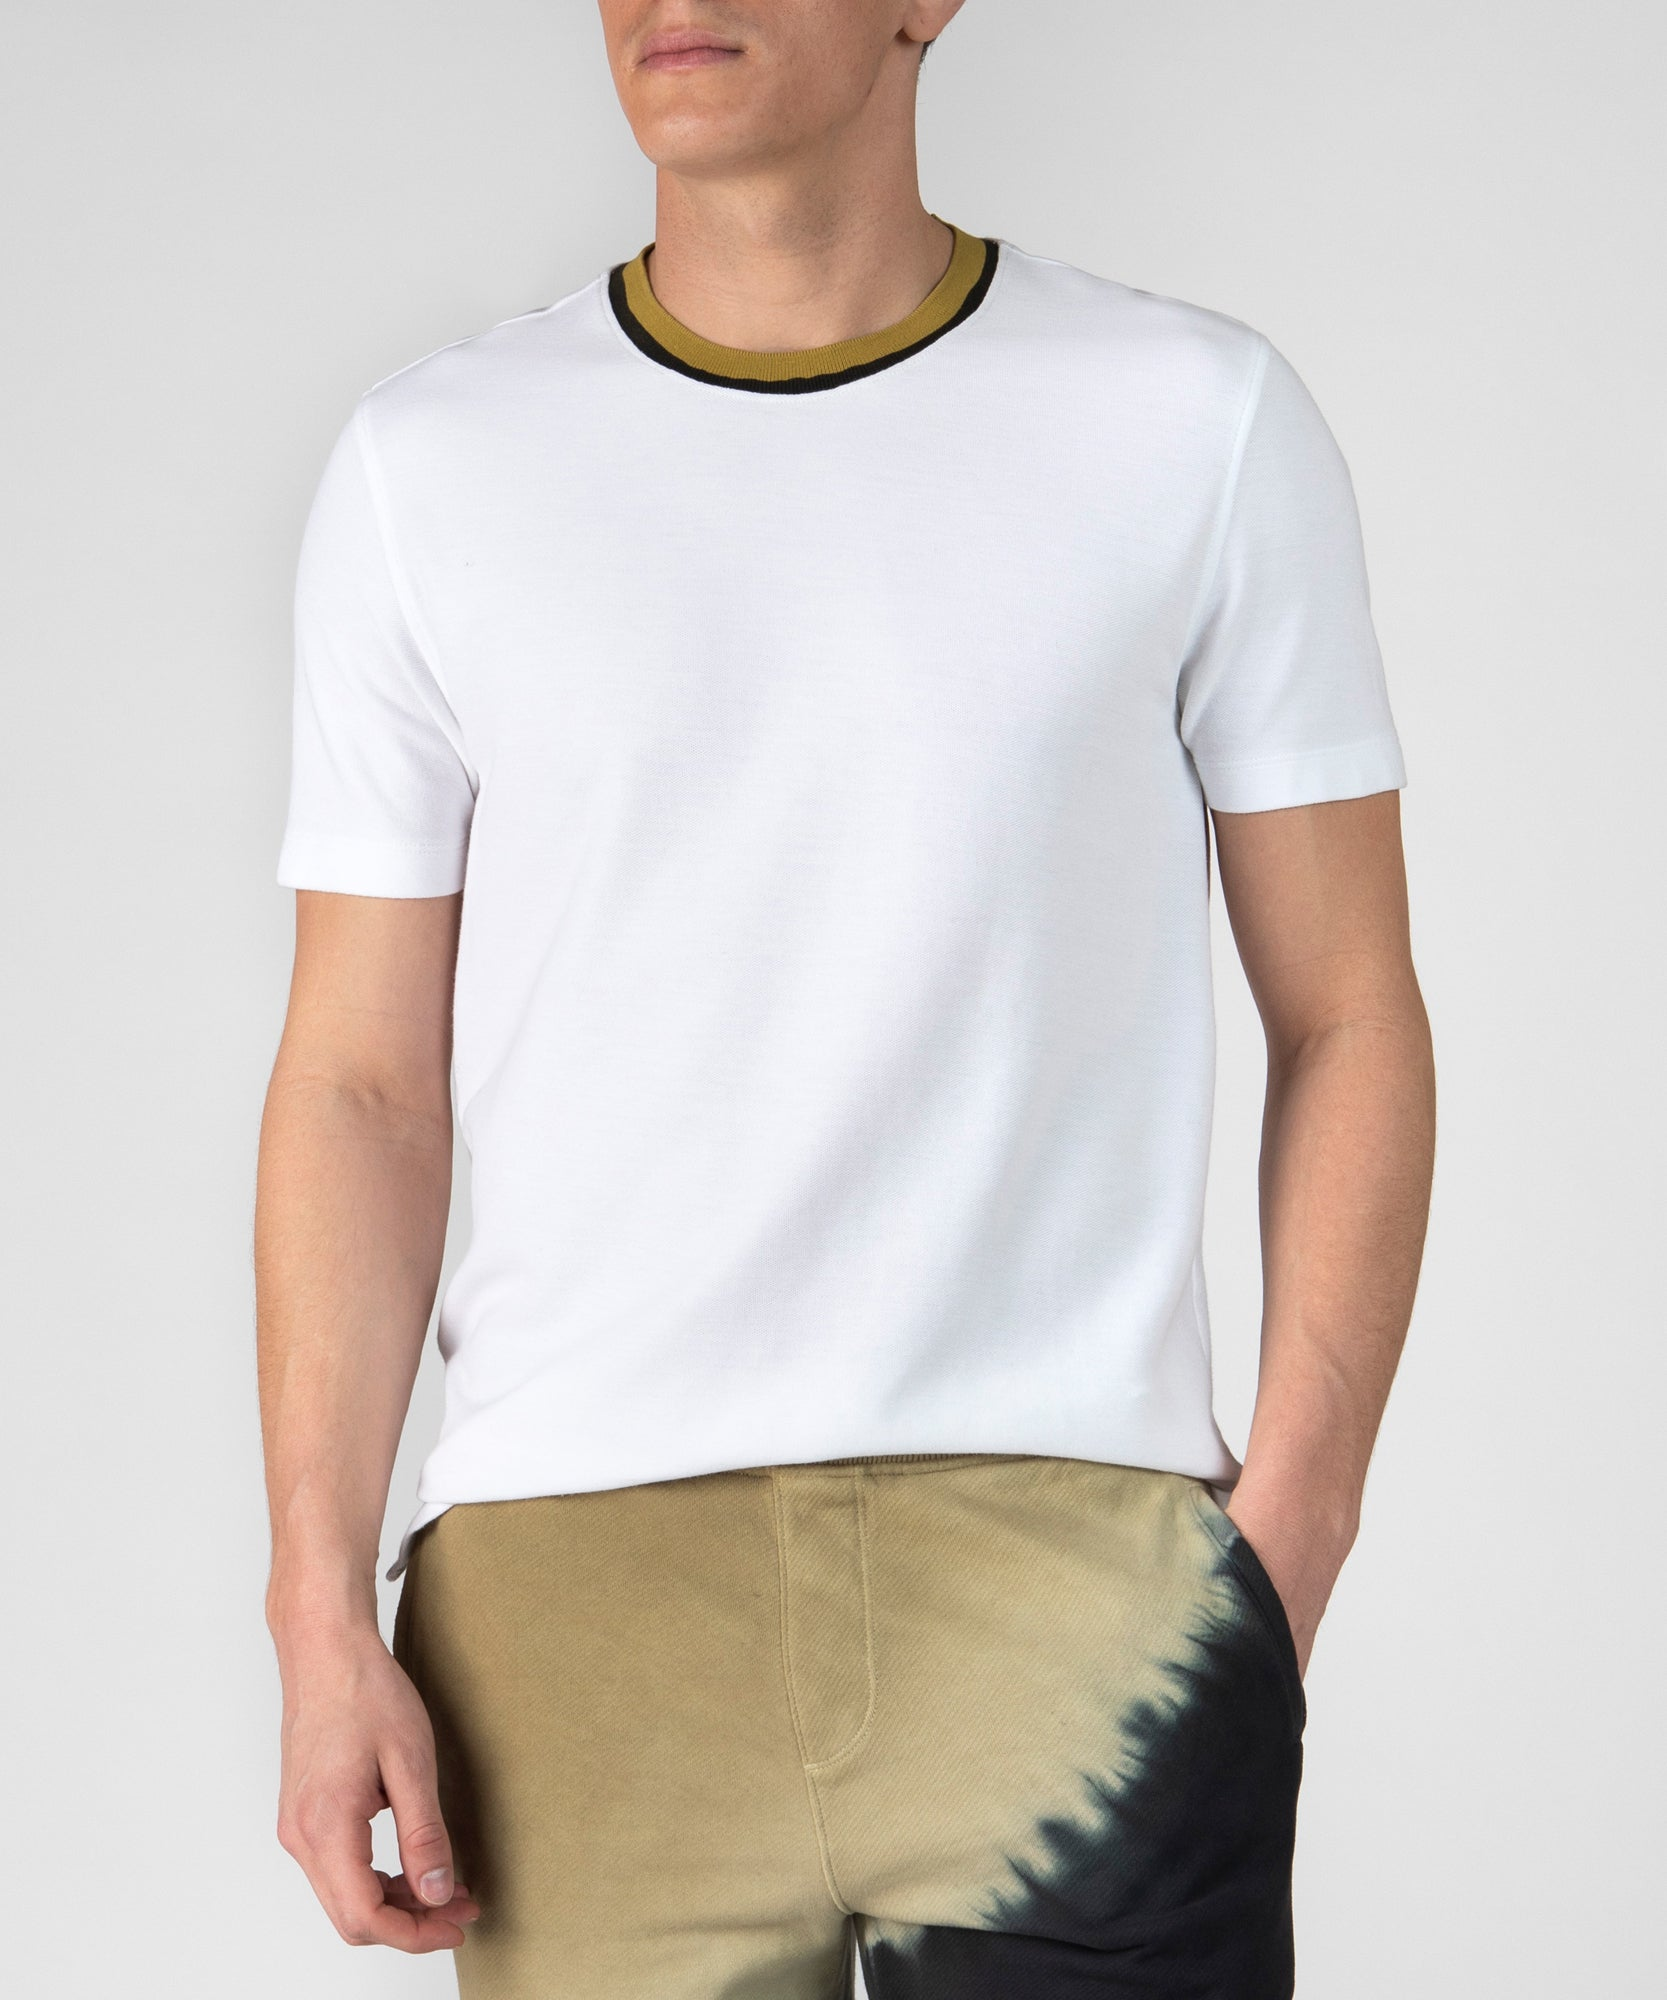 White Pique Hand Painted Crew Neck Tee- Men's Cotton Short Sleeve T-shirt by ATM Anthony Thomas Melillo